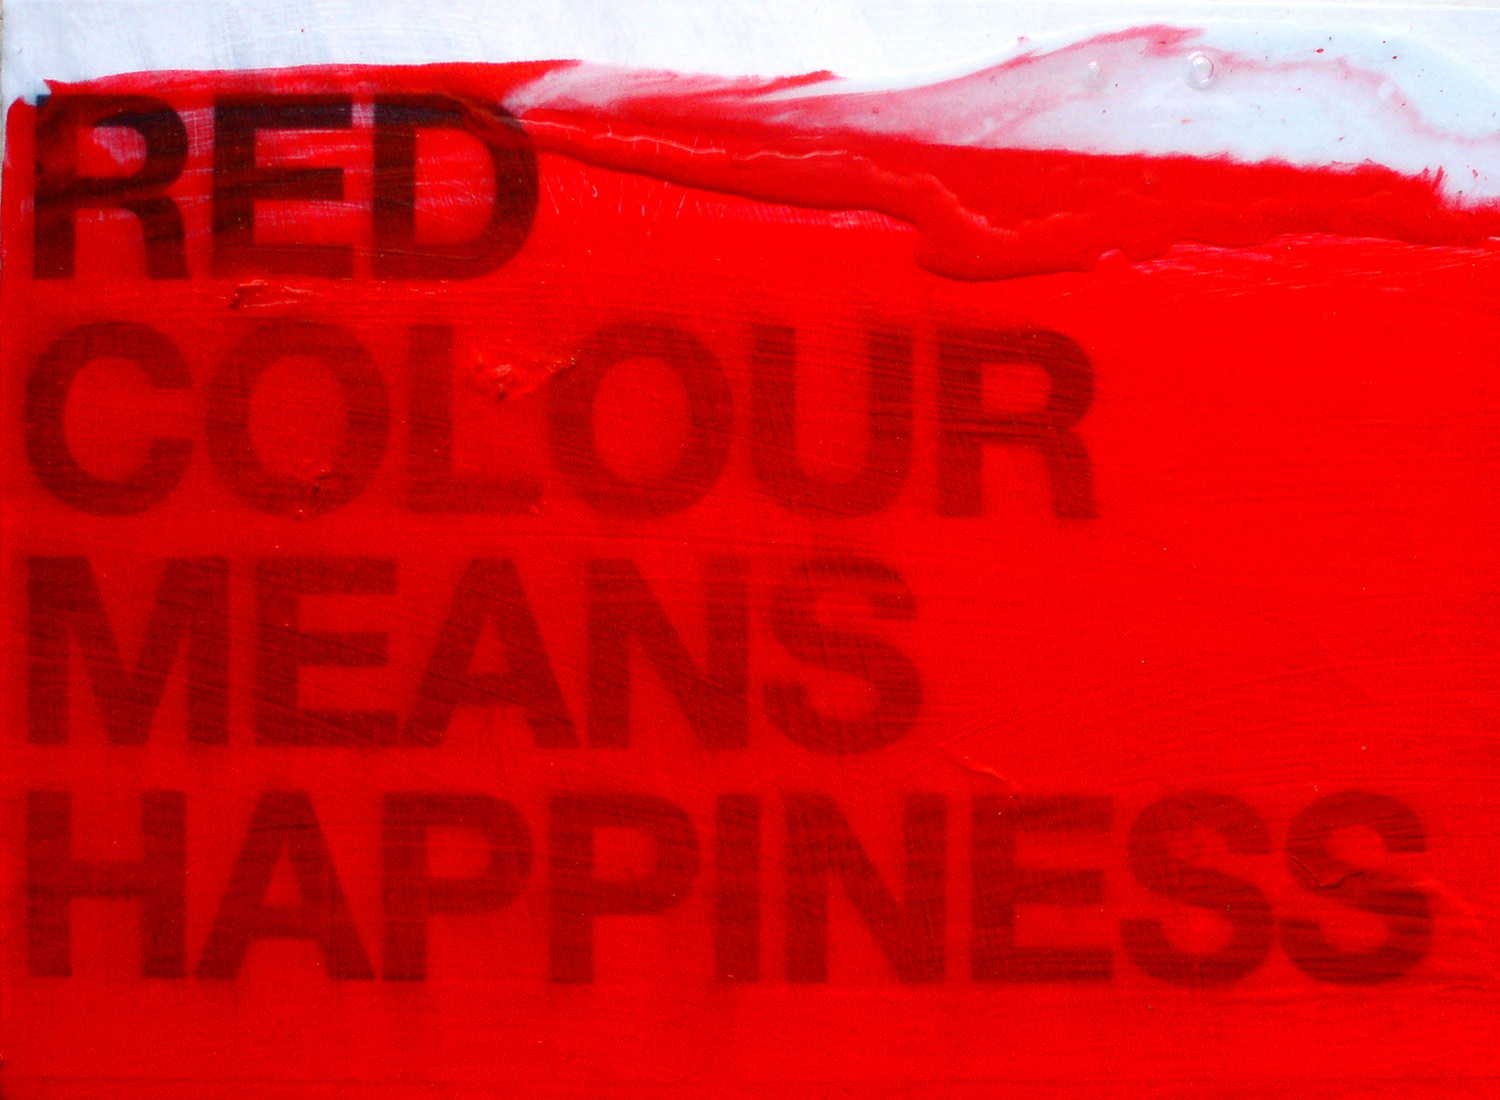 Red colour means happiness